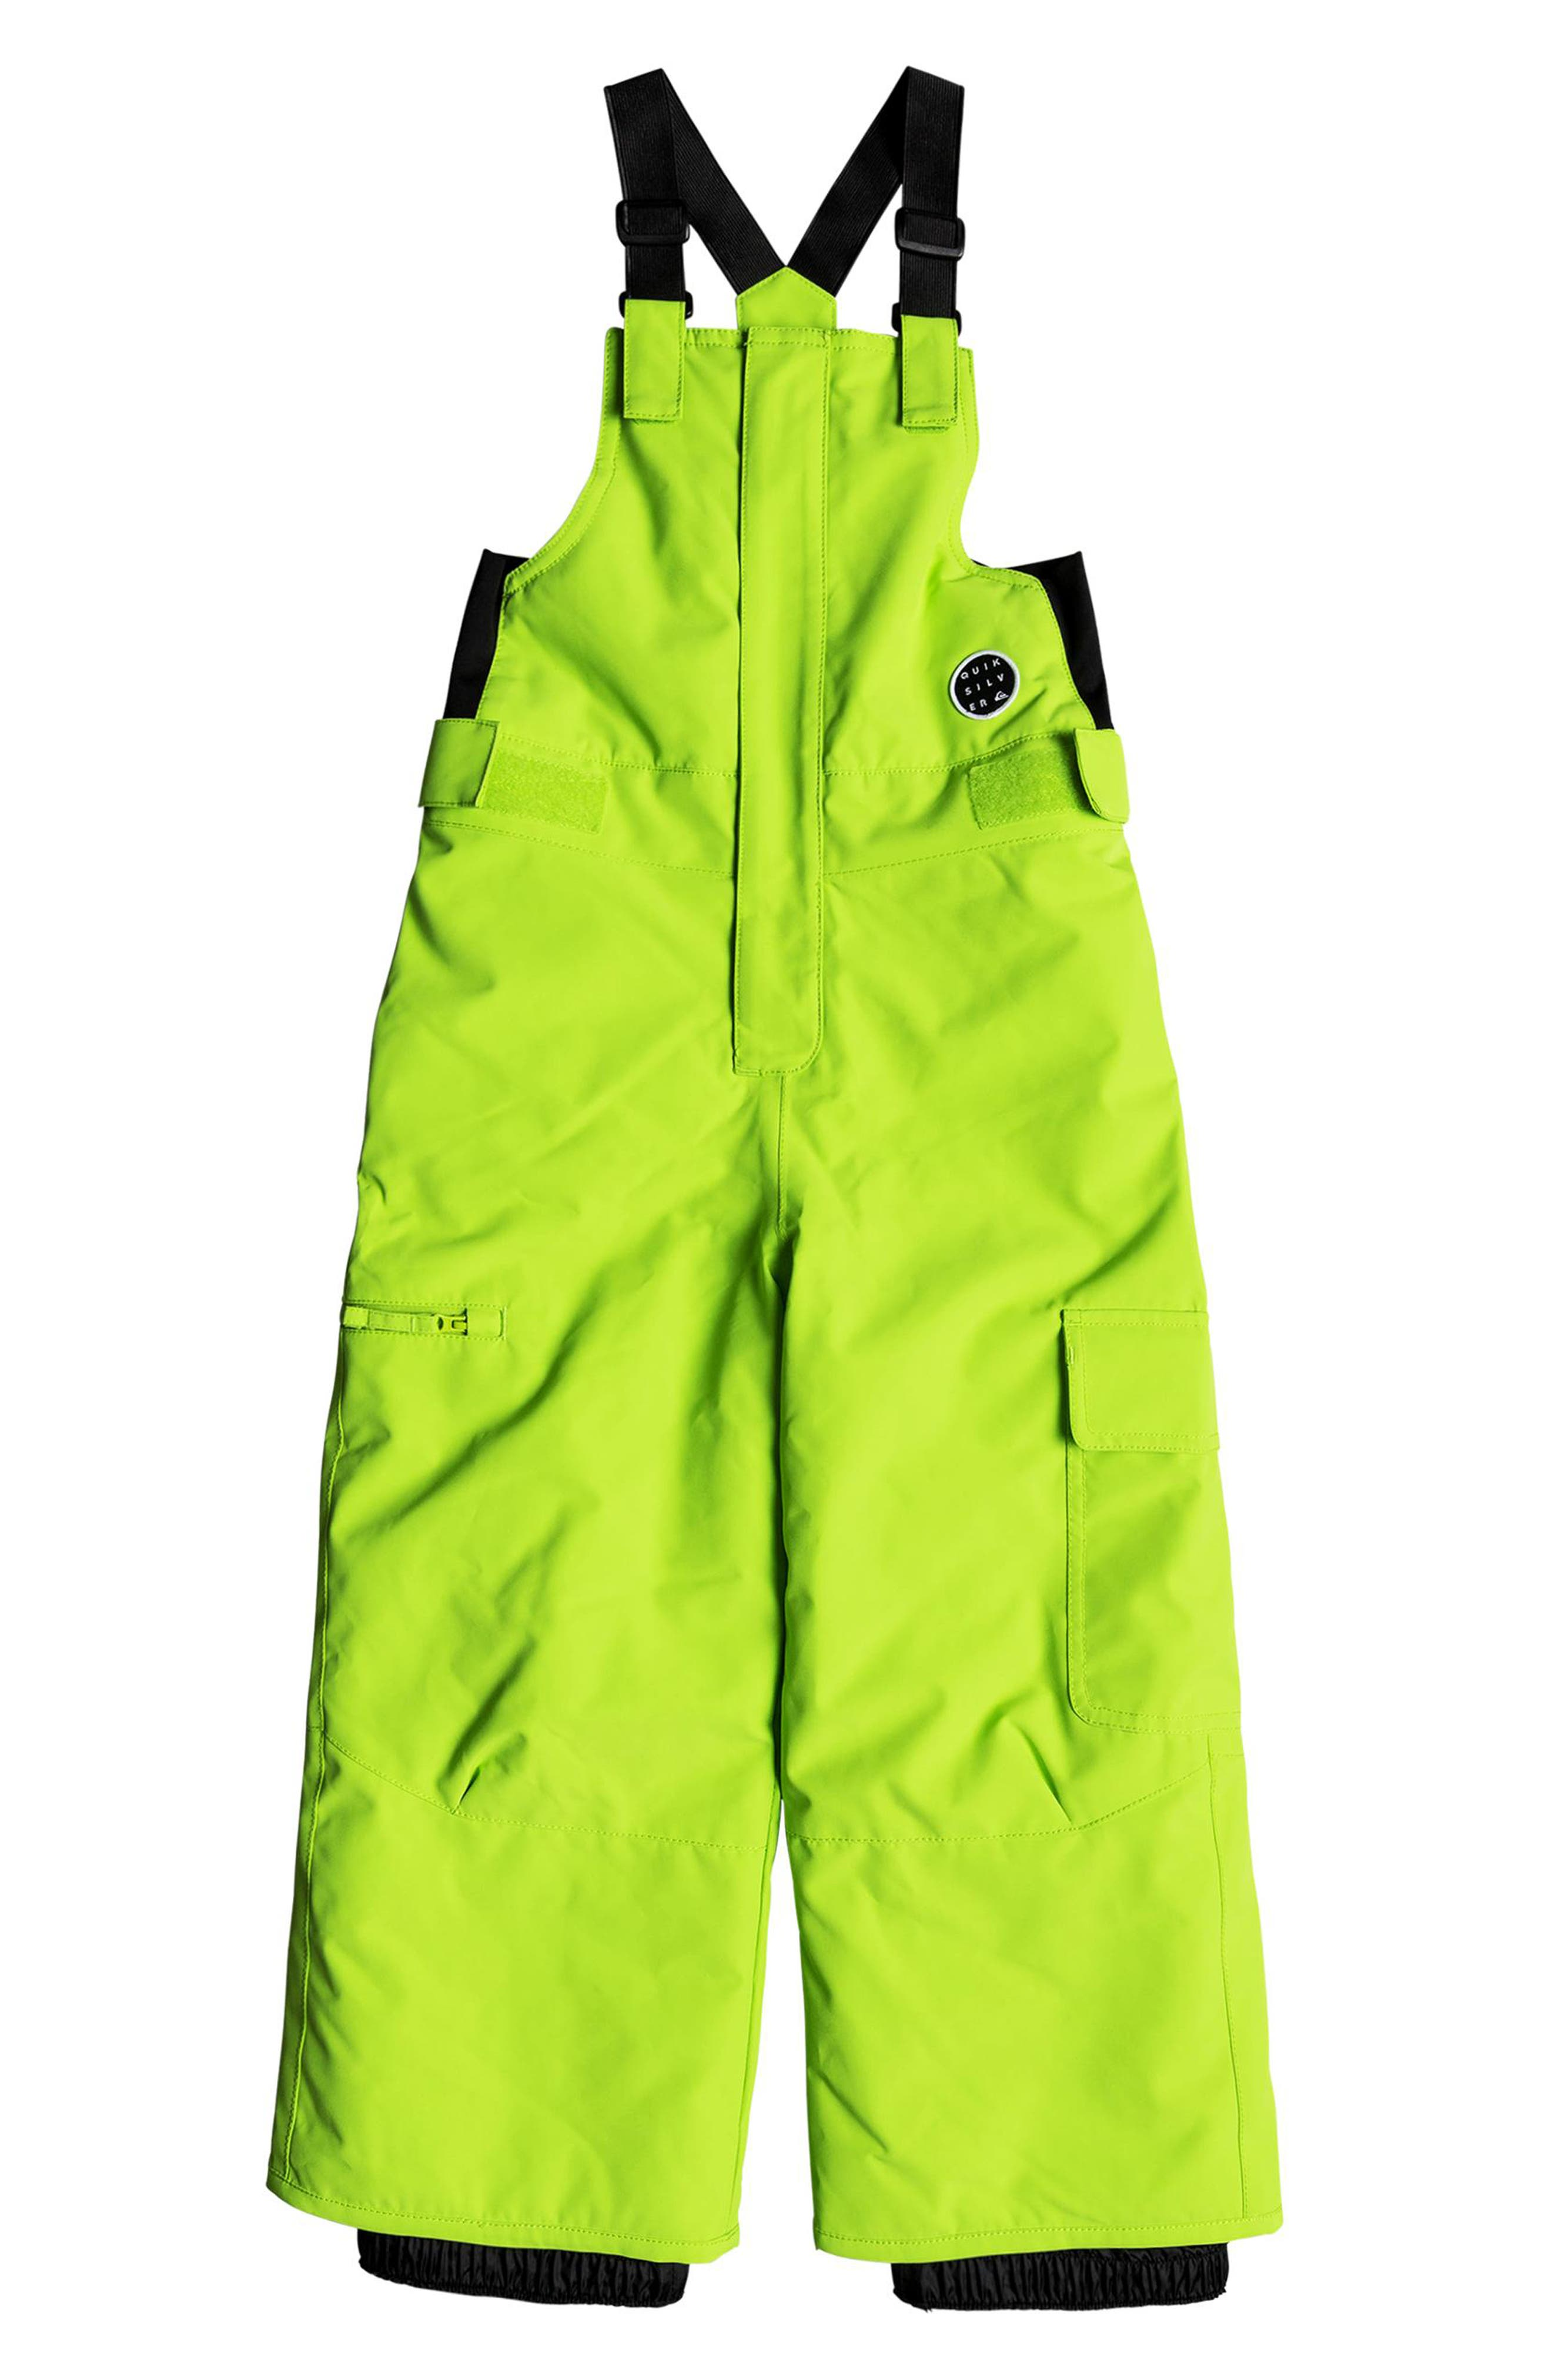 Toddler Boys Quiksilver Boogie Snow Pants Size 3T  Green